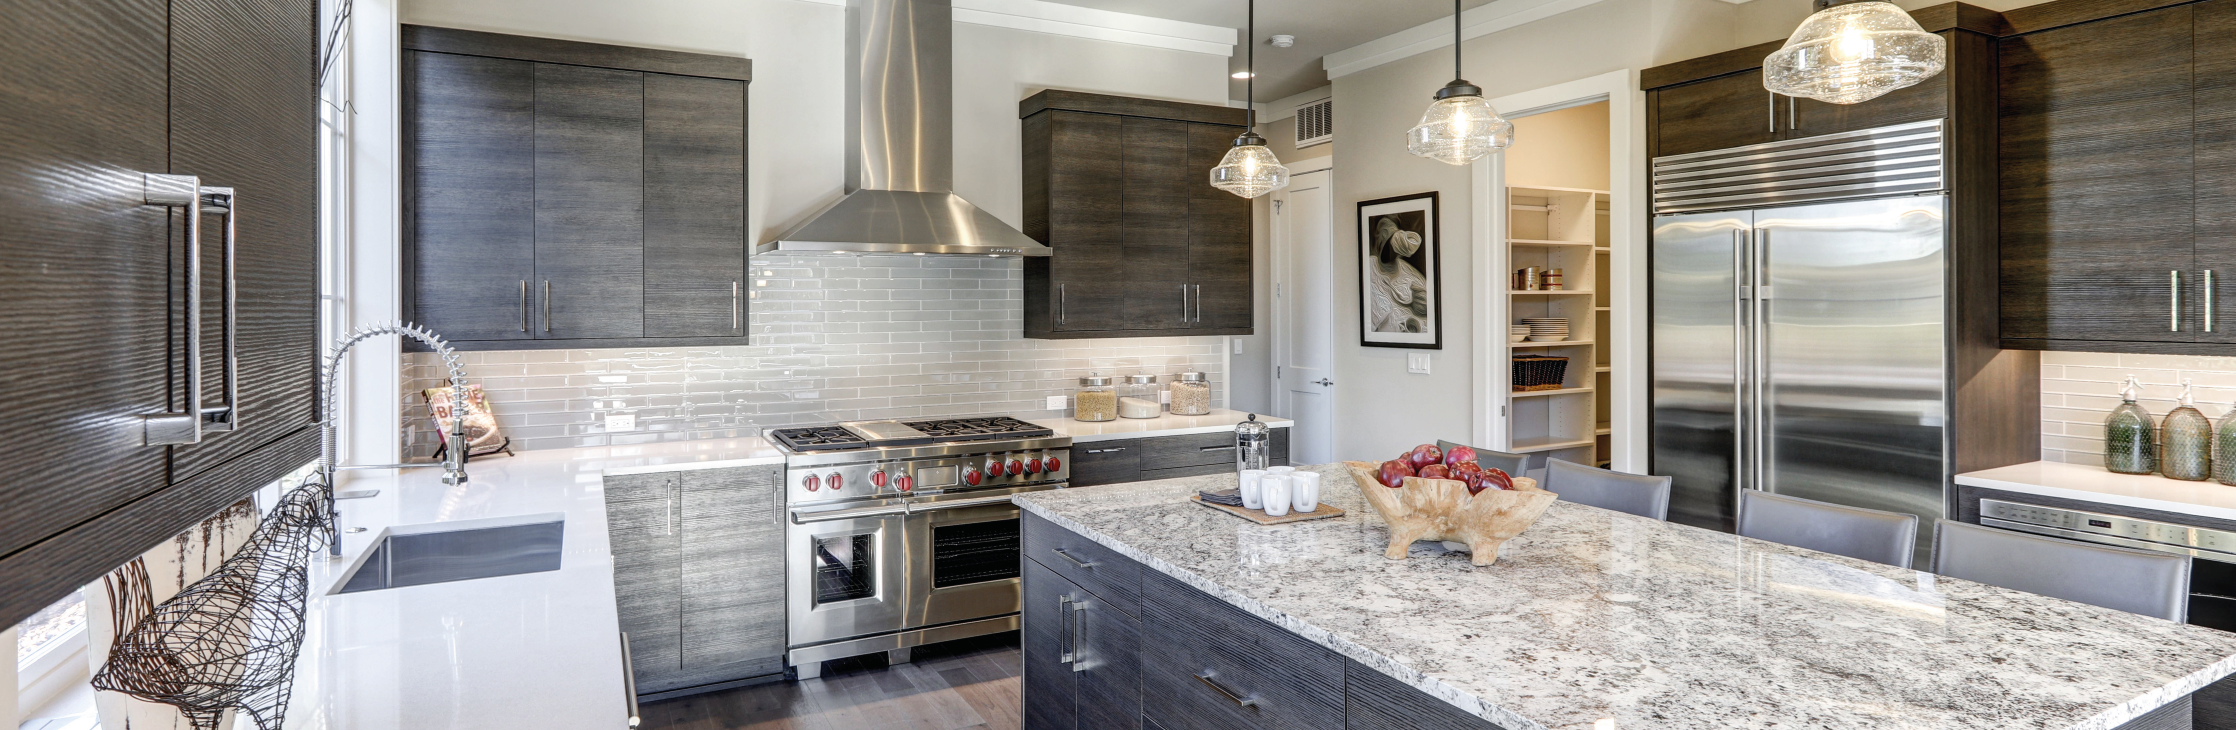 Kitchen Renovation: What Should You Consider First? - The Perth Home ...